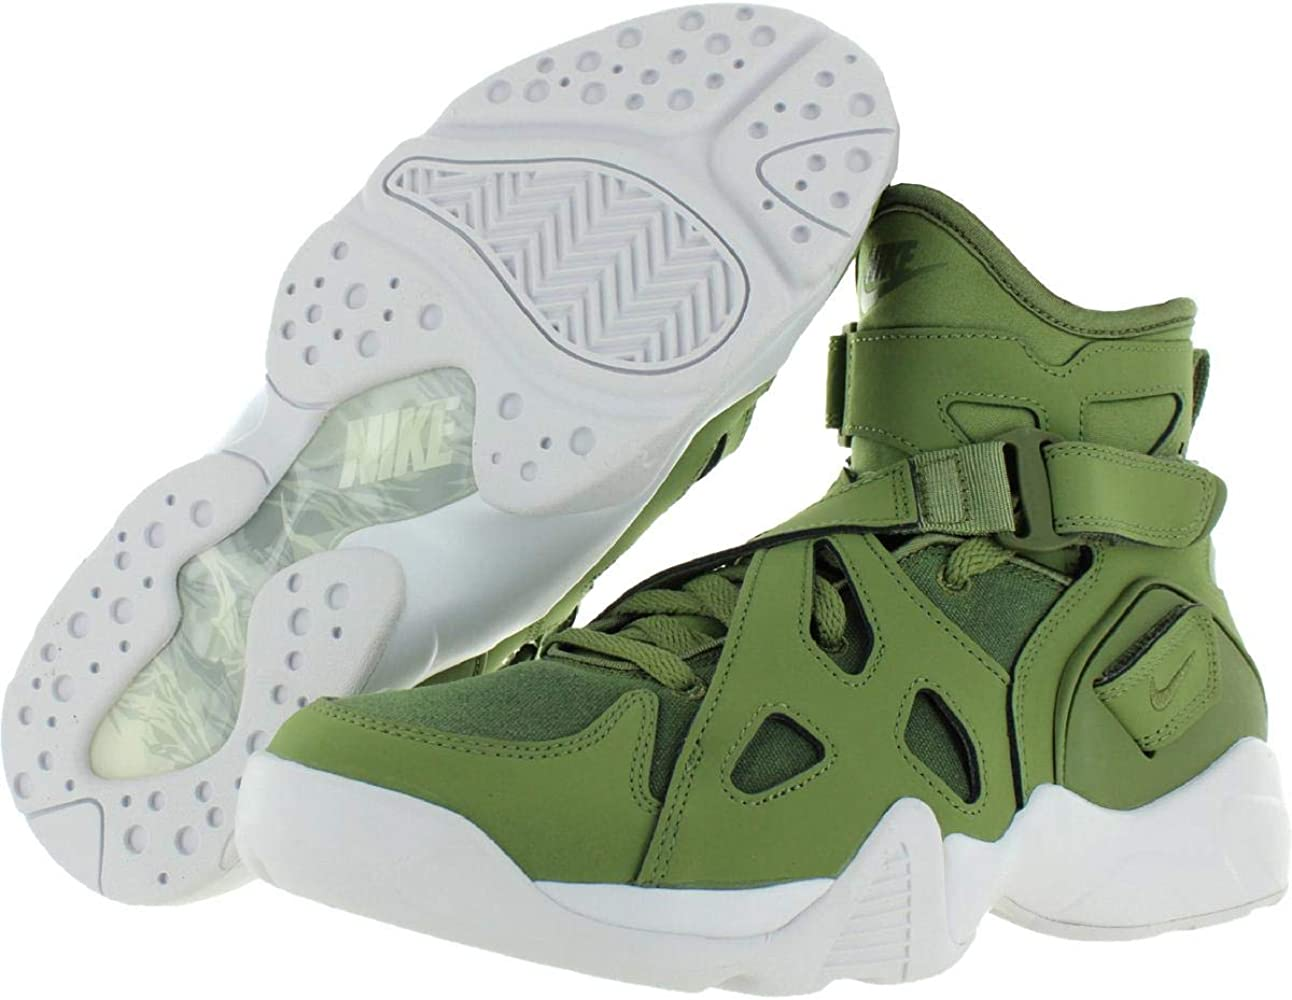 Mens High Top Basketball Shoes